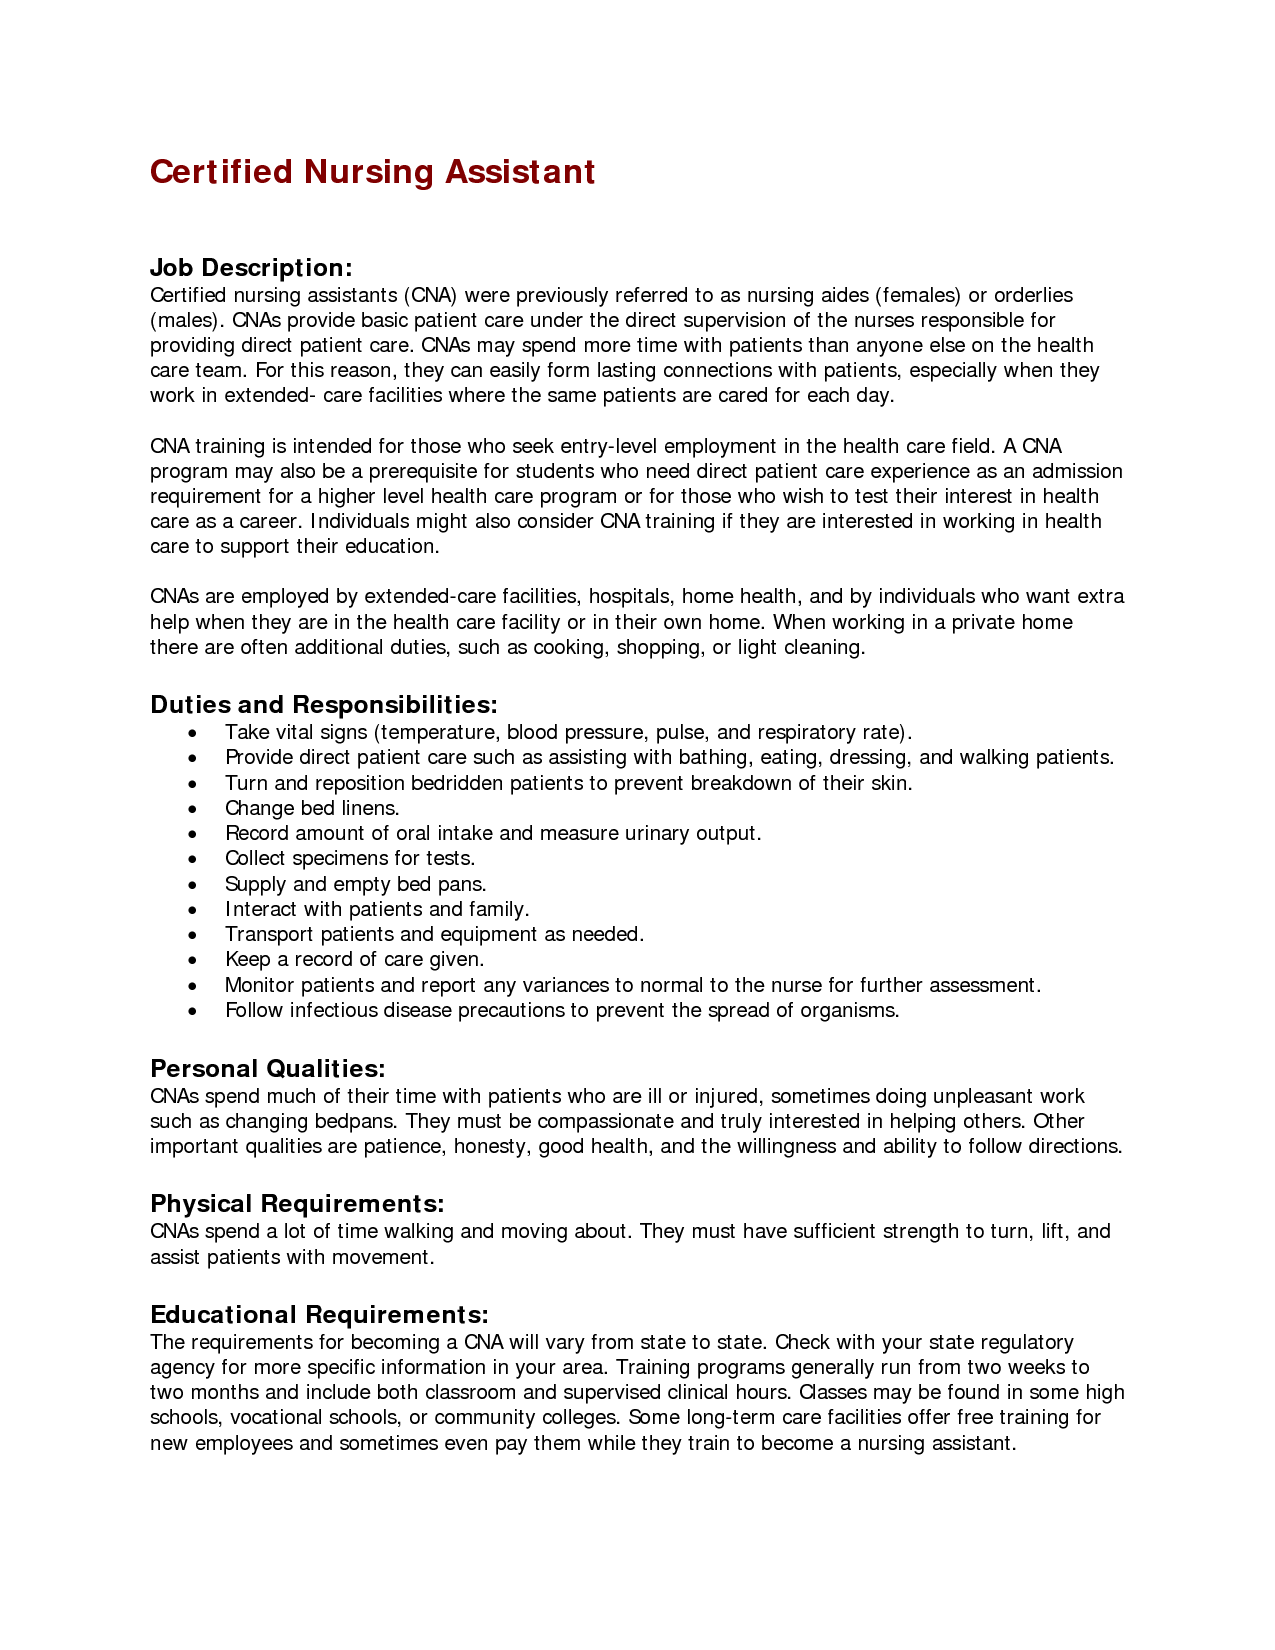 Nursing Assistant Resume Job Description Cna Duties And